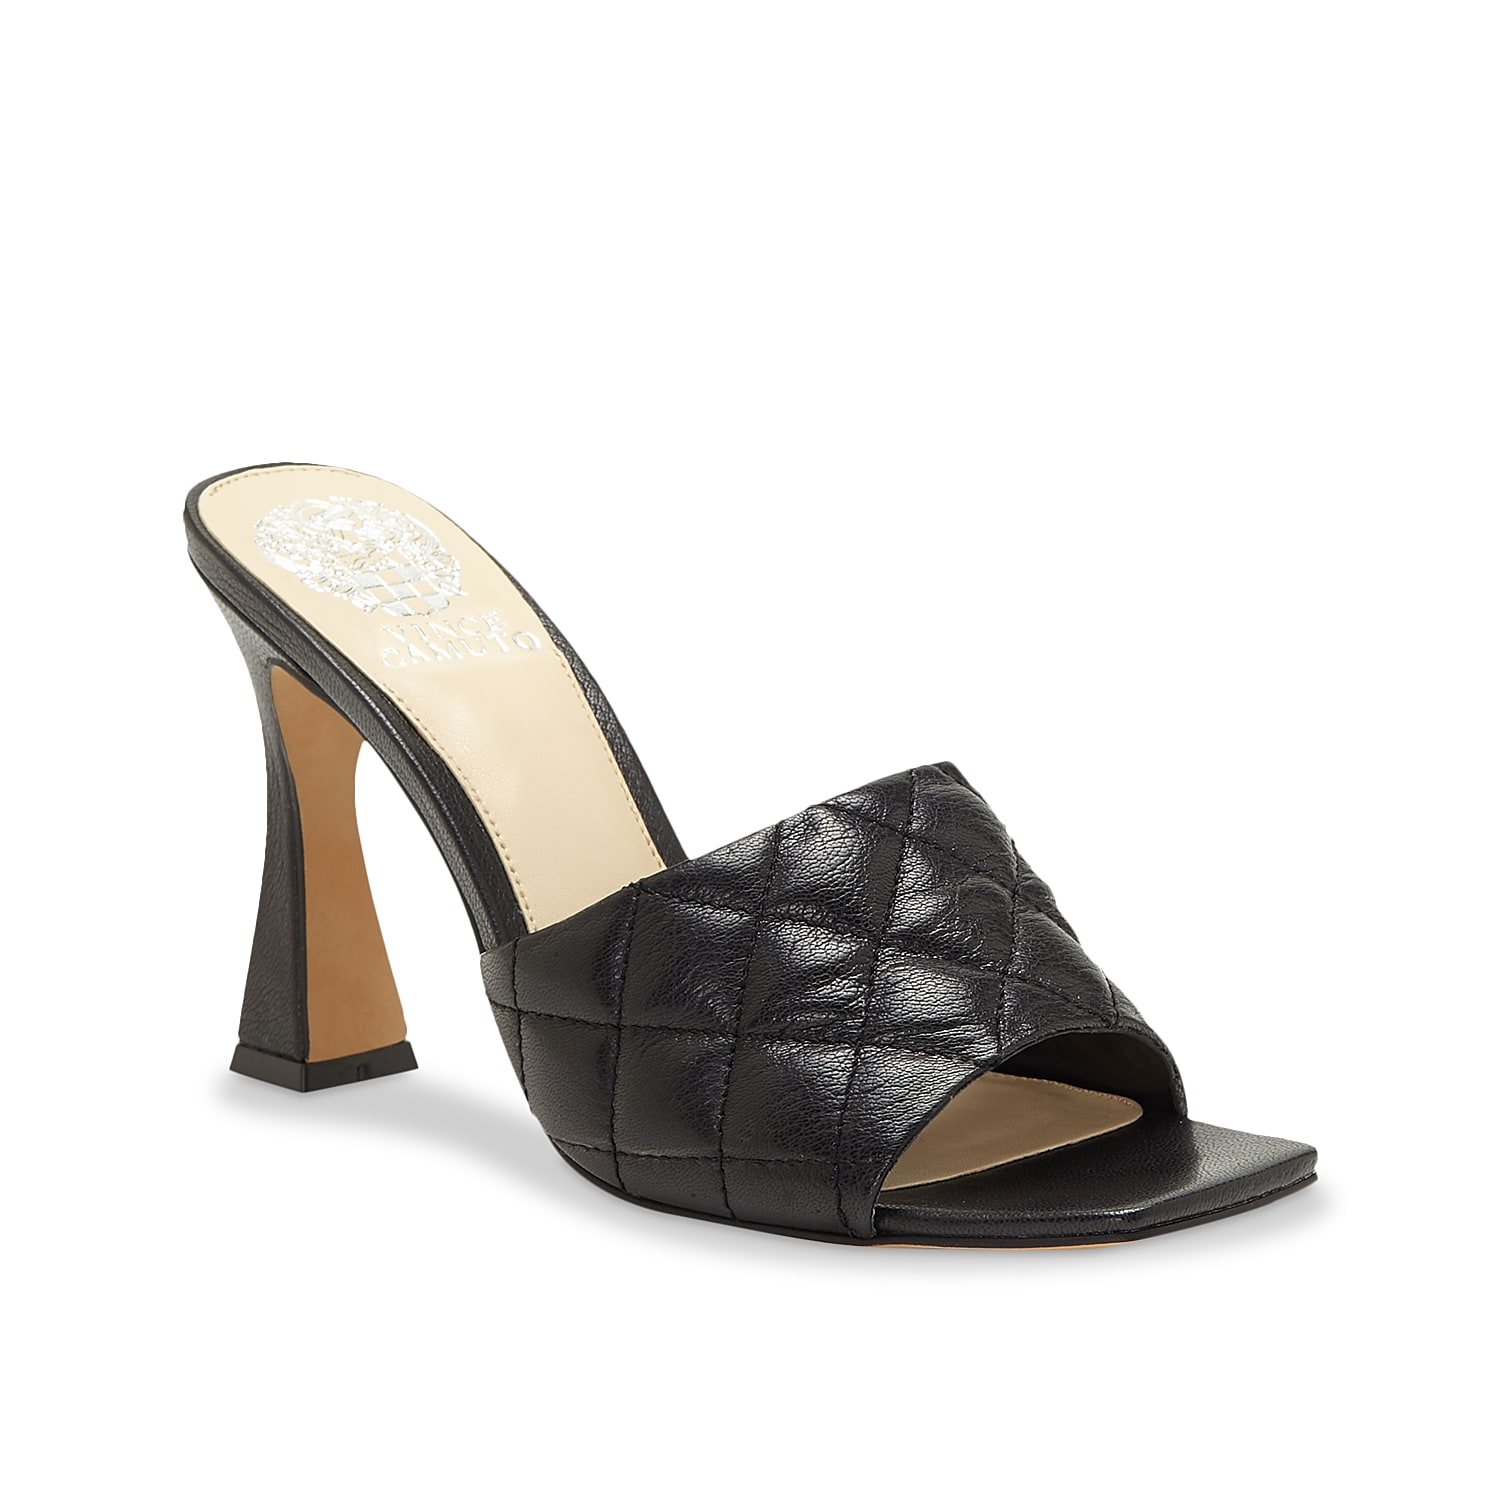 Take your chic style to the next level with the Reselm sandal from Vince Camuto. This pair features a quilted leather upper, flared heel, and square toe for trendy appeal.